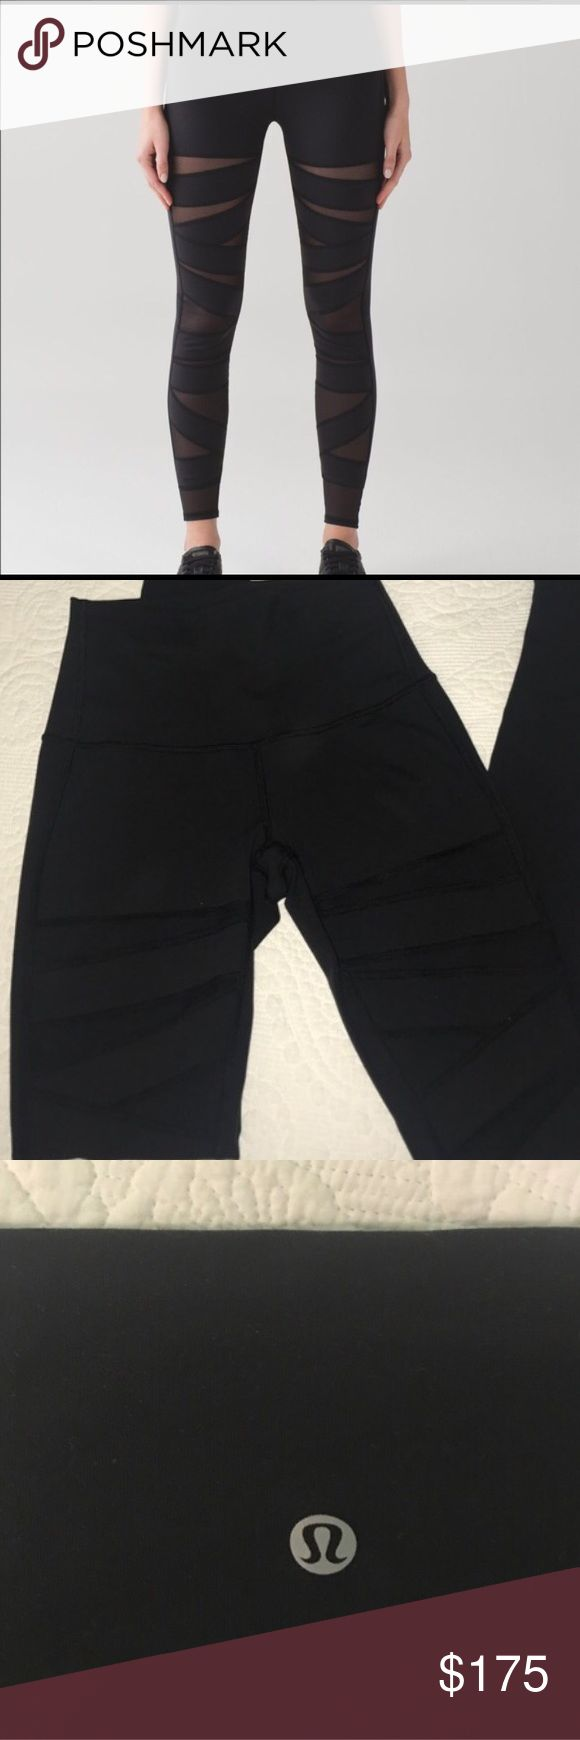 *flash sale* Lululemon Tech Mesh Leggings New, never worn without tags. Wunder Under. Sold out online and in store. Looking to sell because they don't fit me--just looking to get my money back for what I paid. Willing to trade for a size 2, or other size 4 lululemon leggings. lululemon athletica Pants Leggings